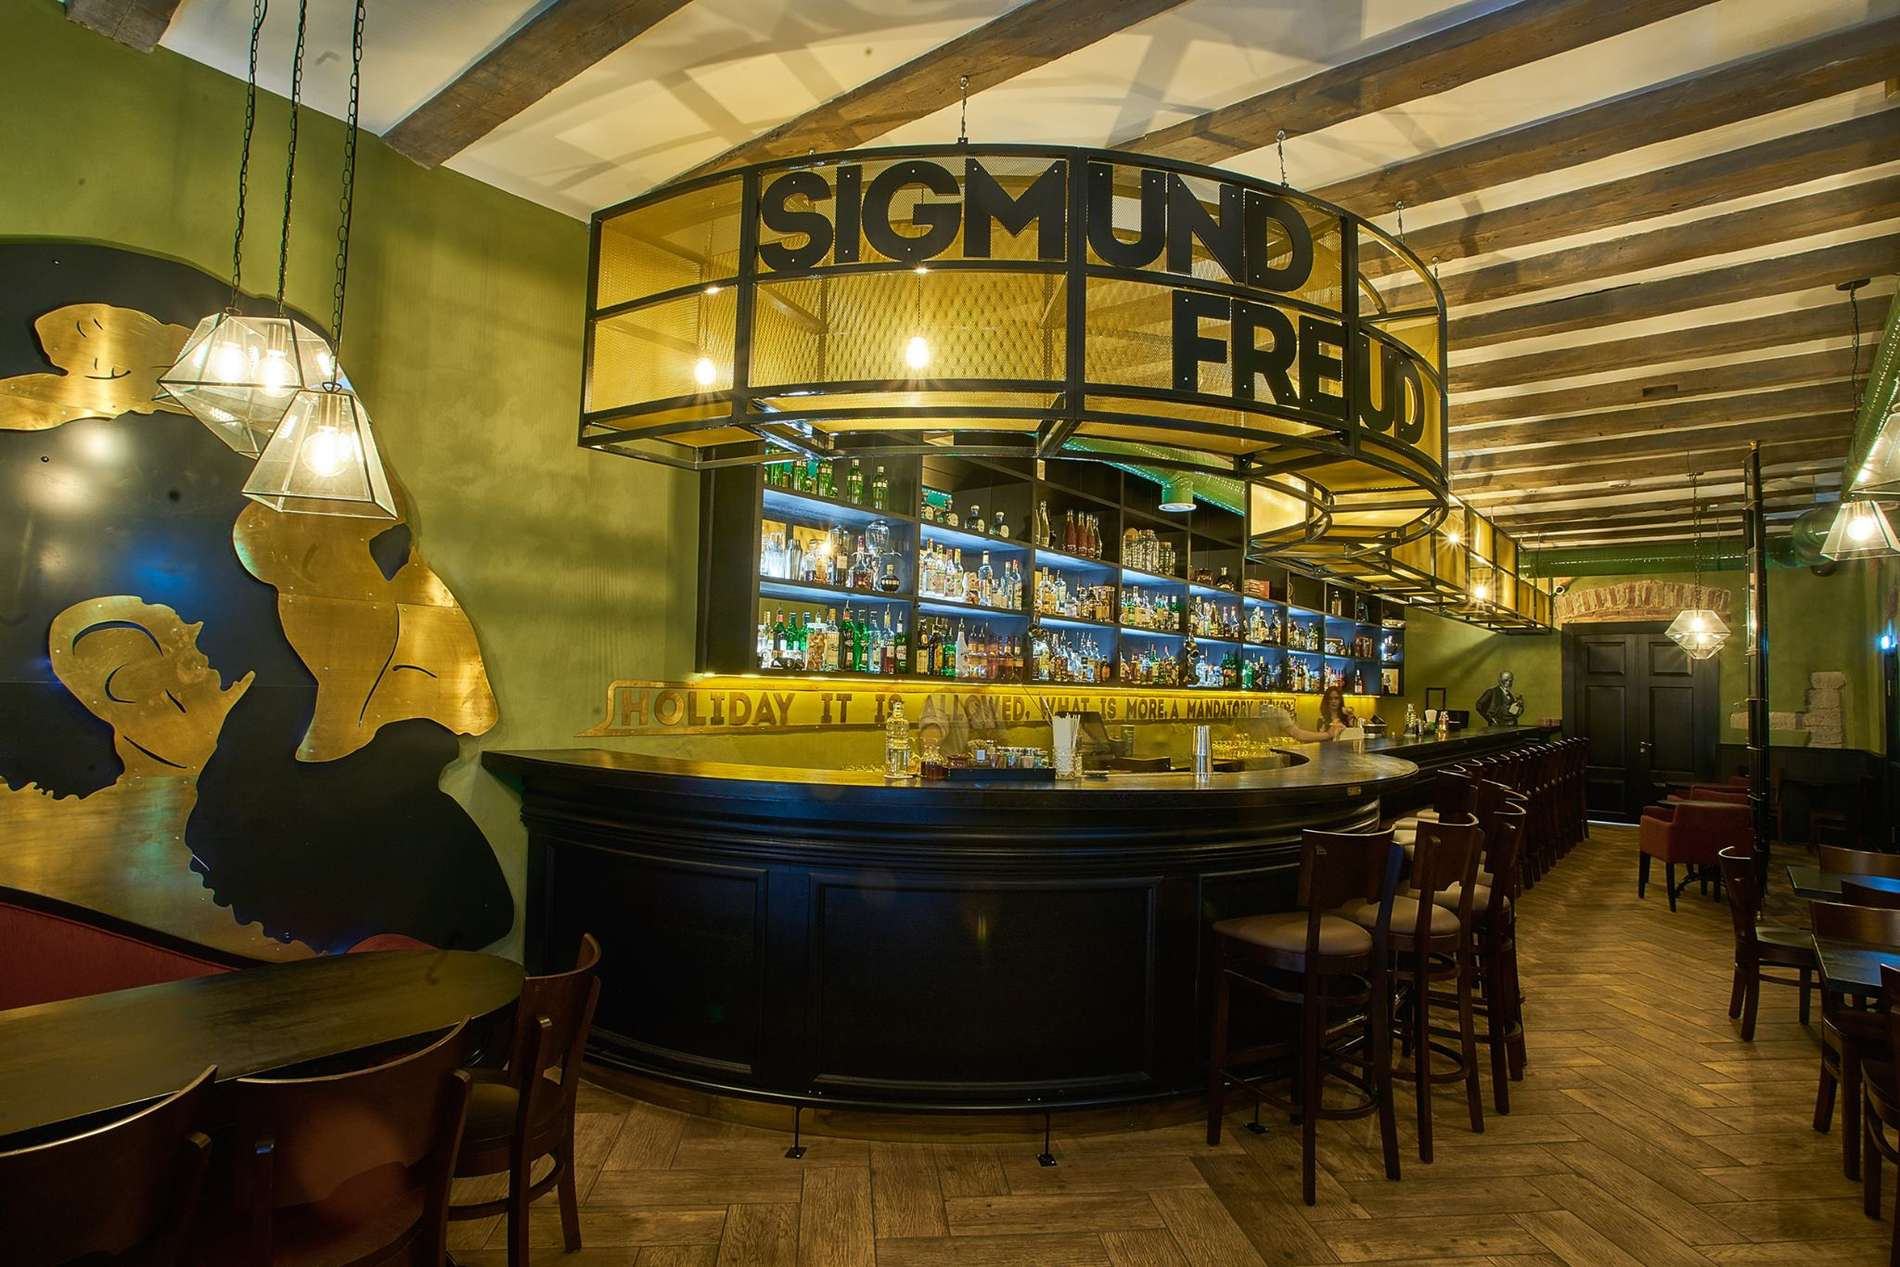 Sigmund Freud Bar